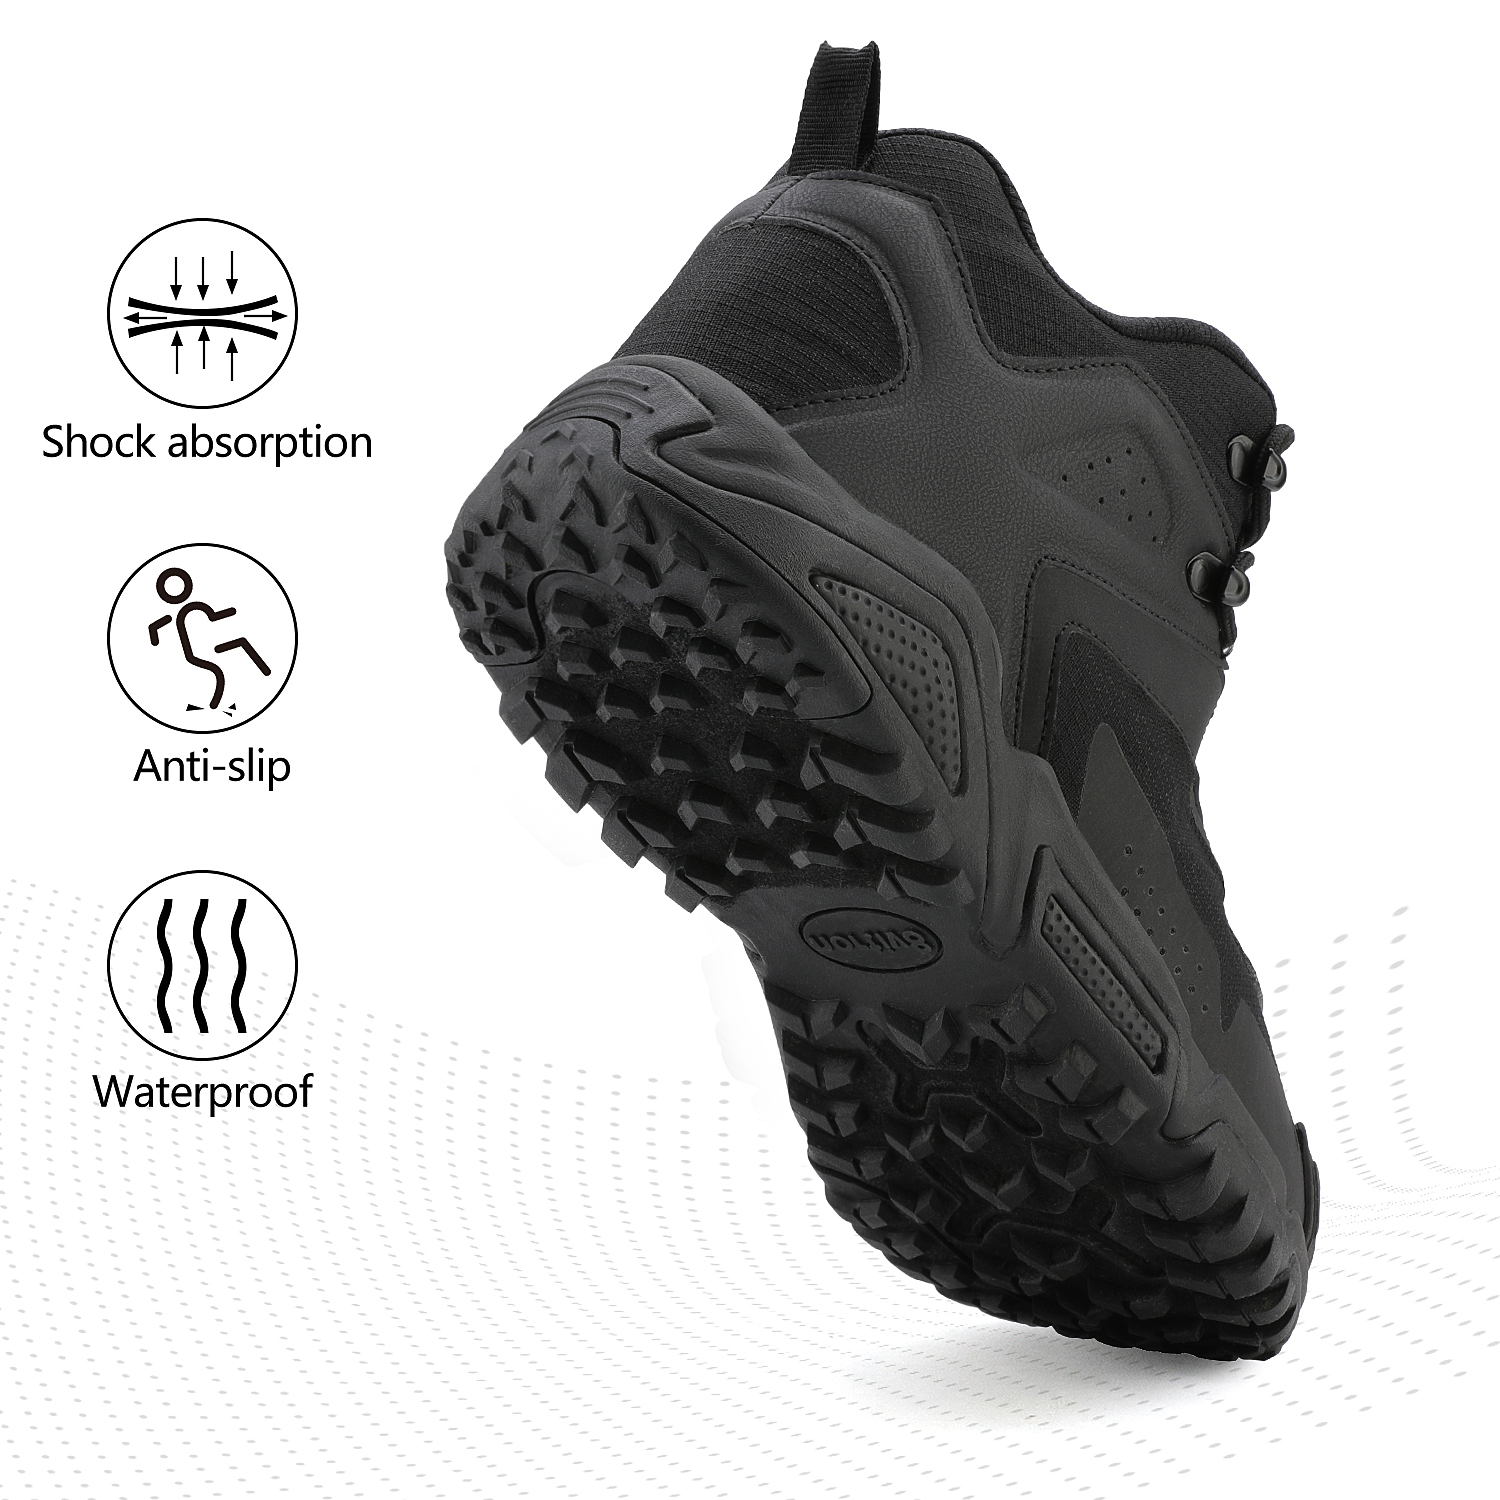 NORTIV-8-Men-039-s-Ankle-Waterproof-Hiking-Boots-Lightweight-Backpacking-Work-Shoes thumbnail 25